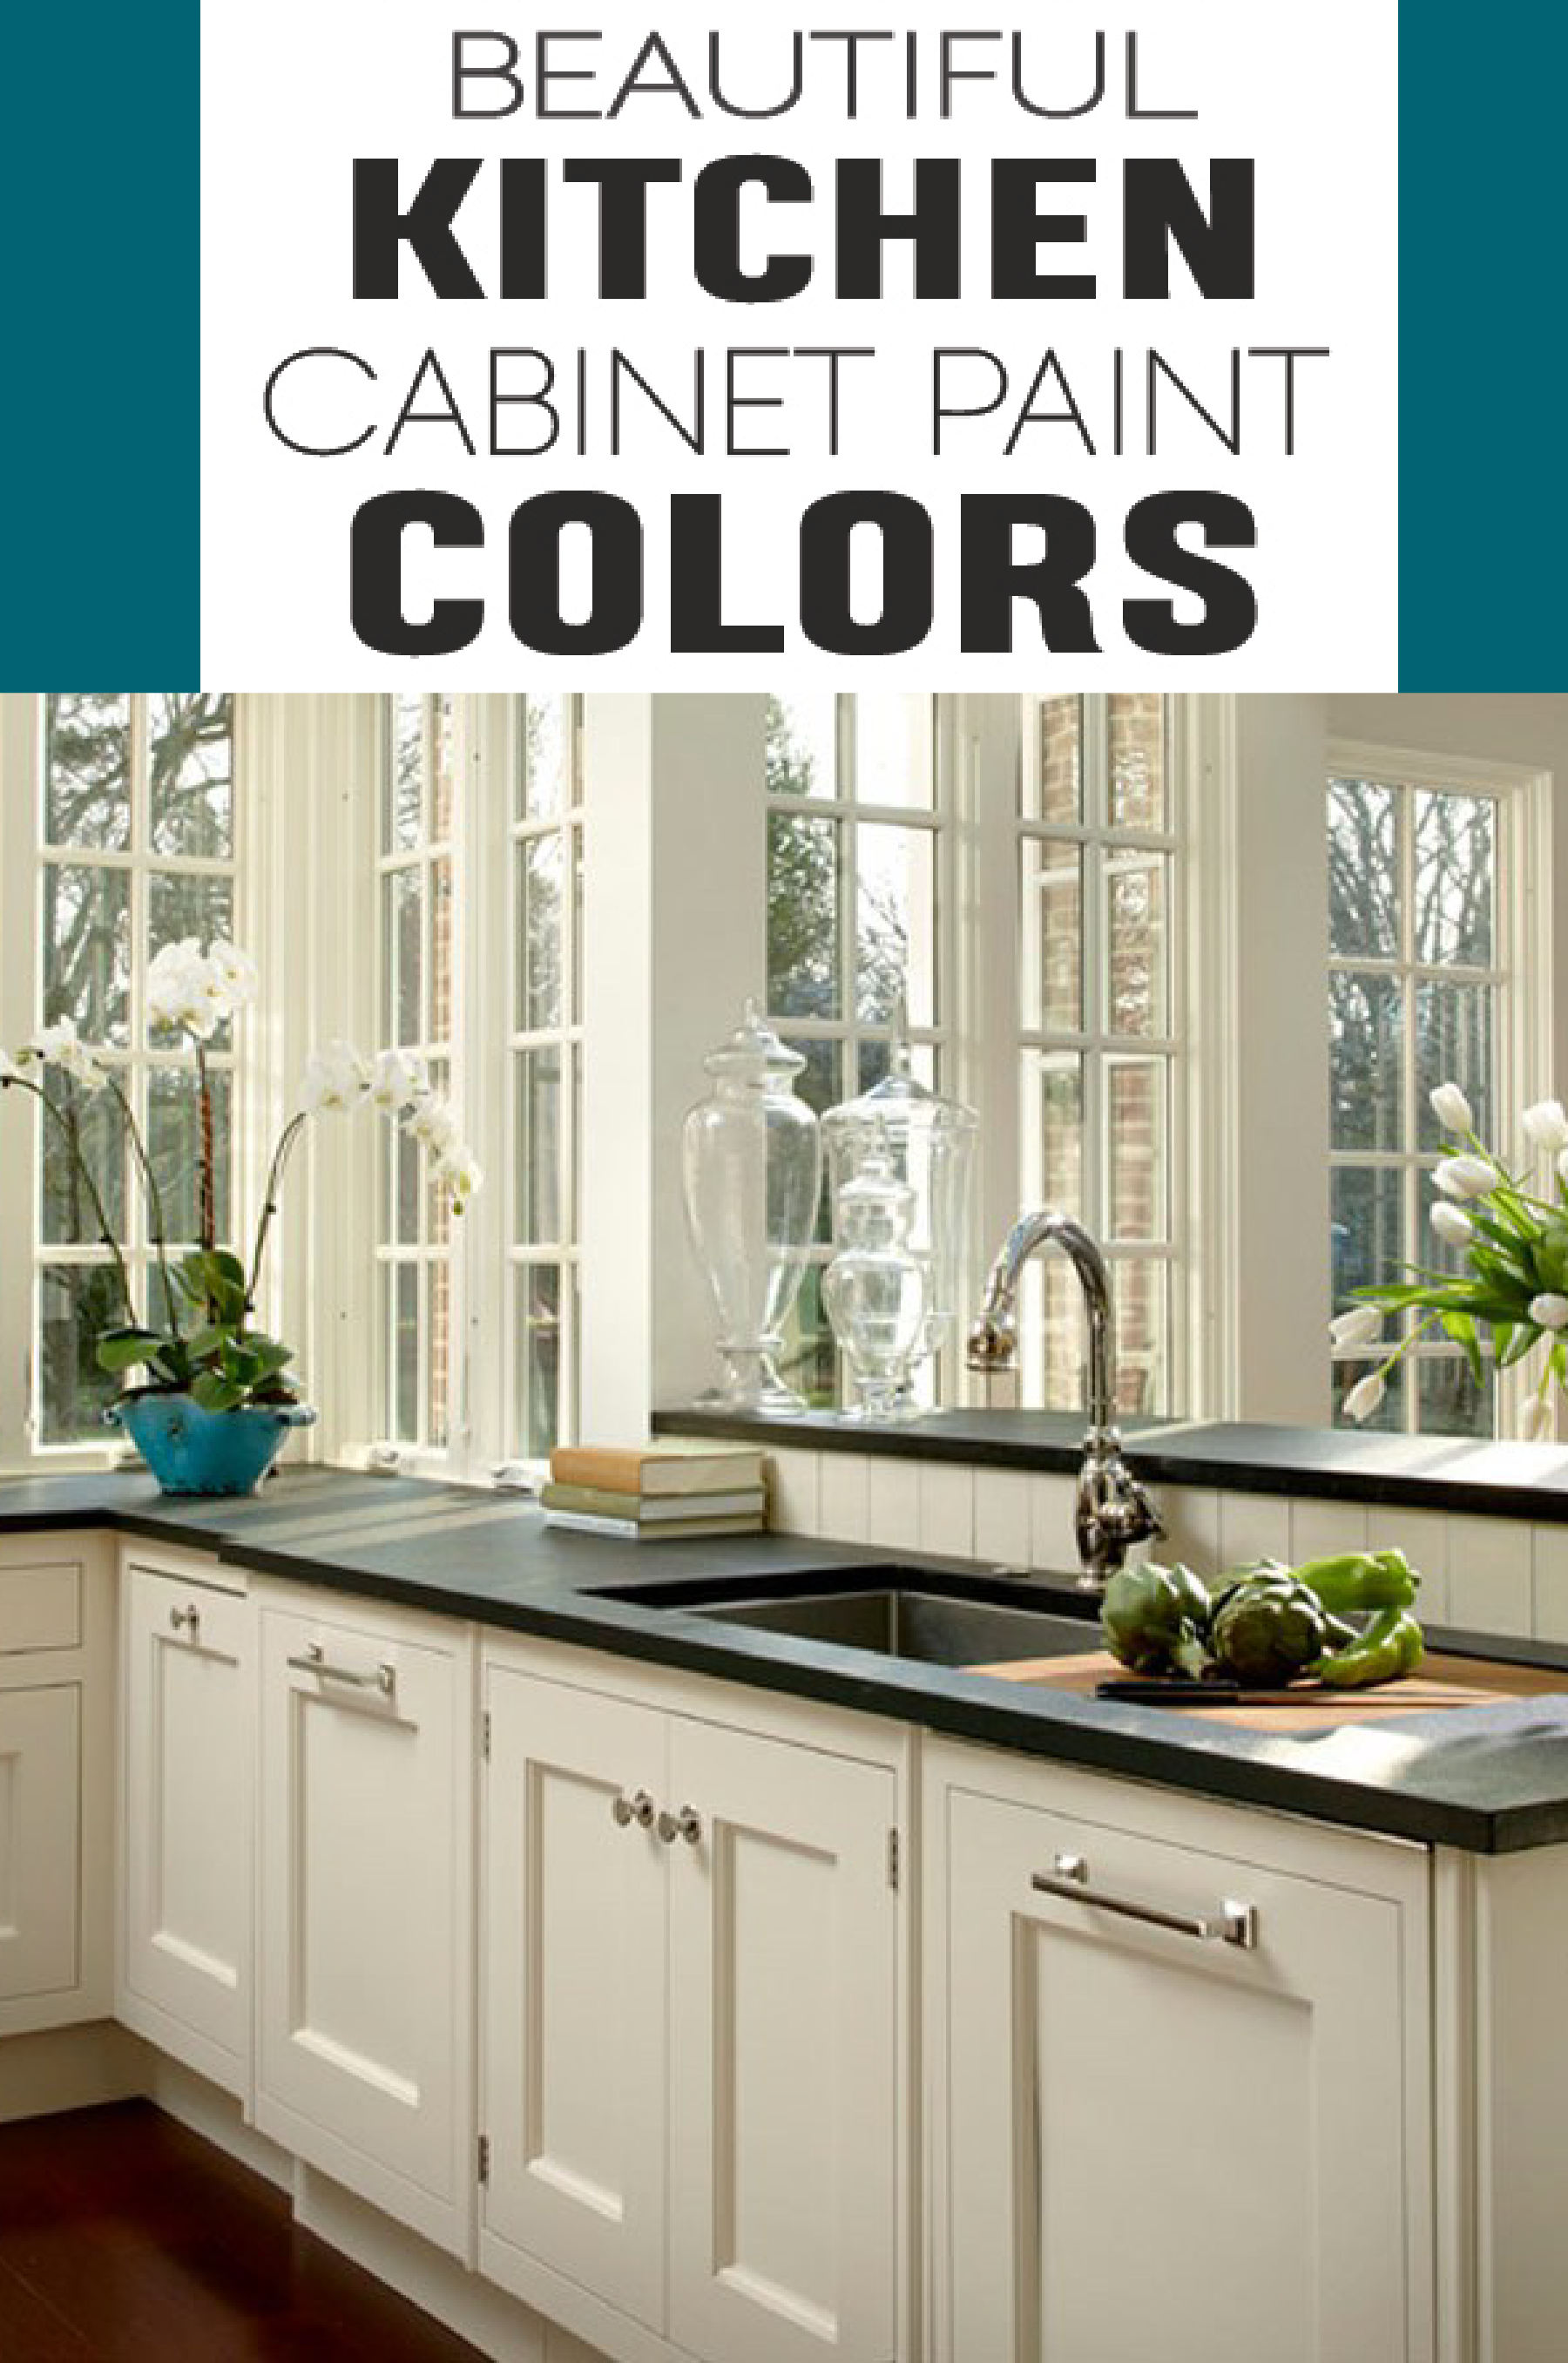 How To Pick Paint Colors For Kitchen Cabinets Kitchen Cabinet